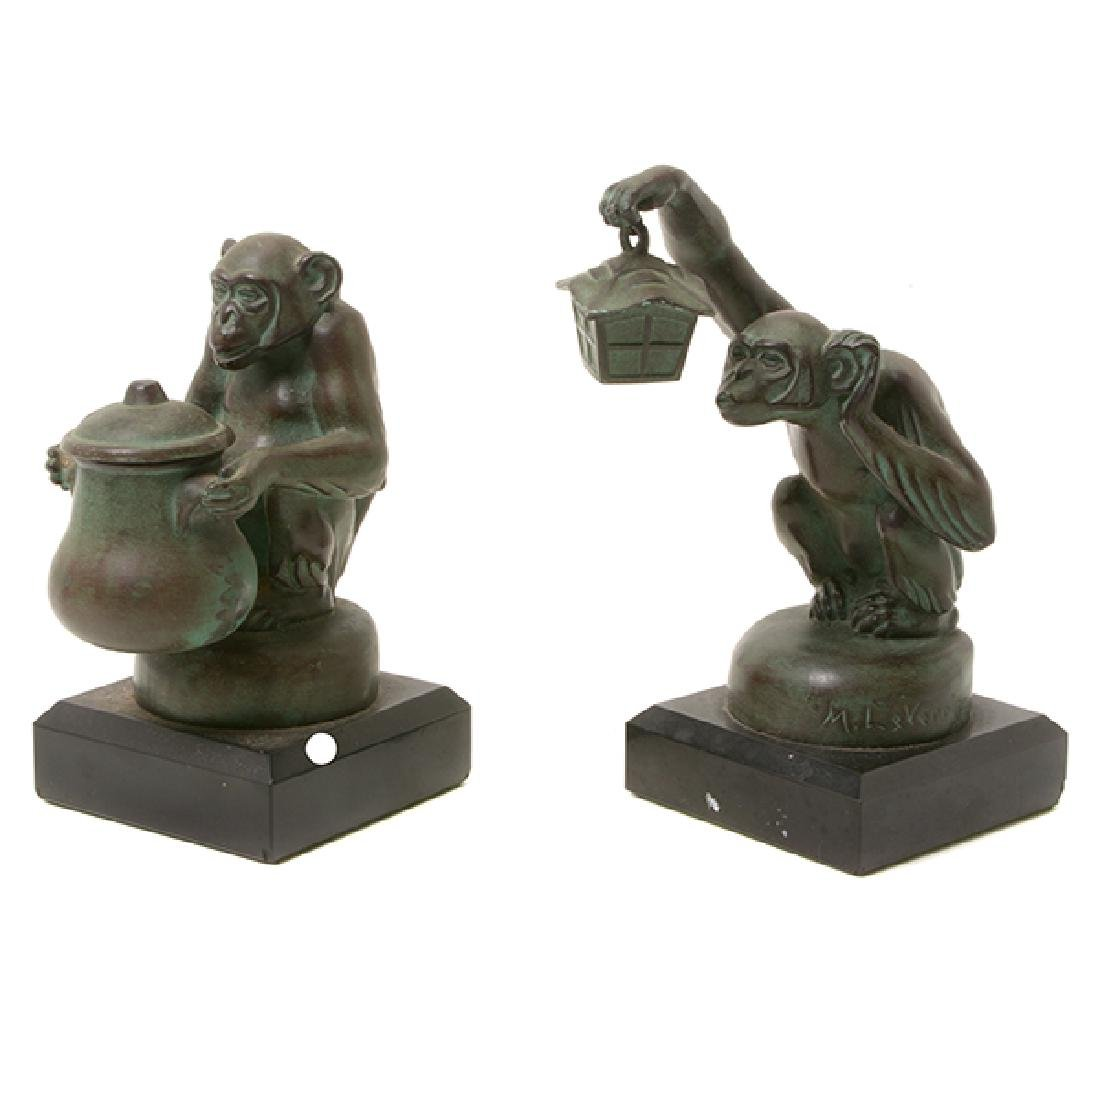 Pair of Bronze Monkey Figures, After M. LeVerrier